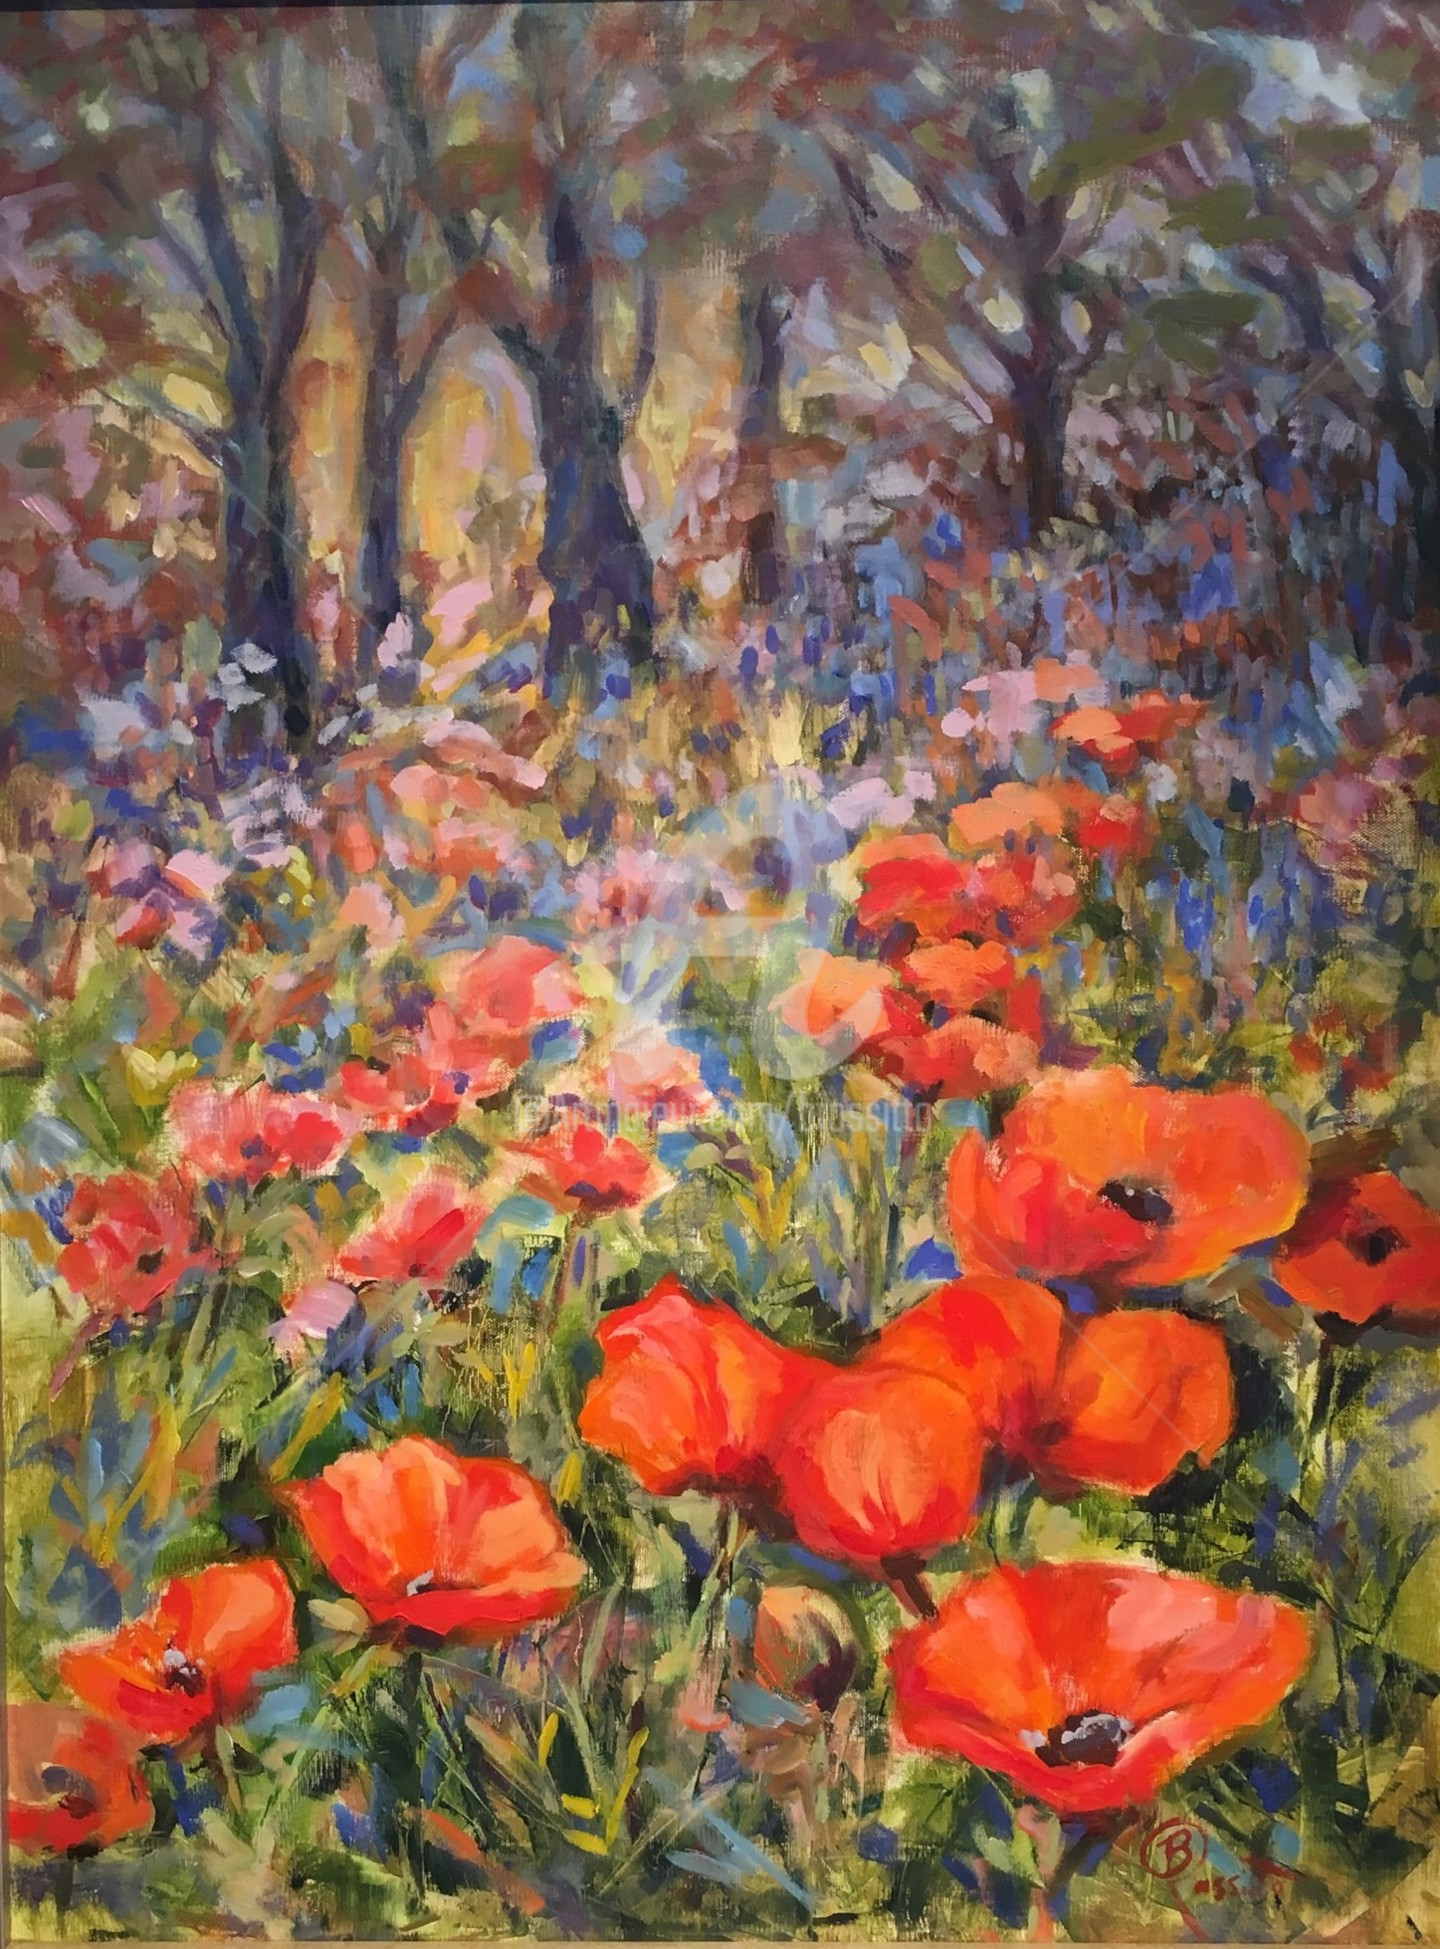 B.Rossitto - Lake Placid Poppies